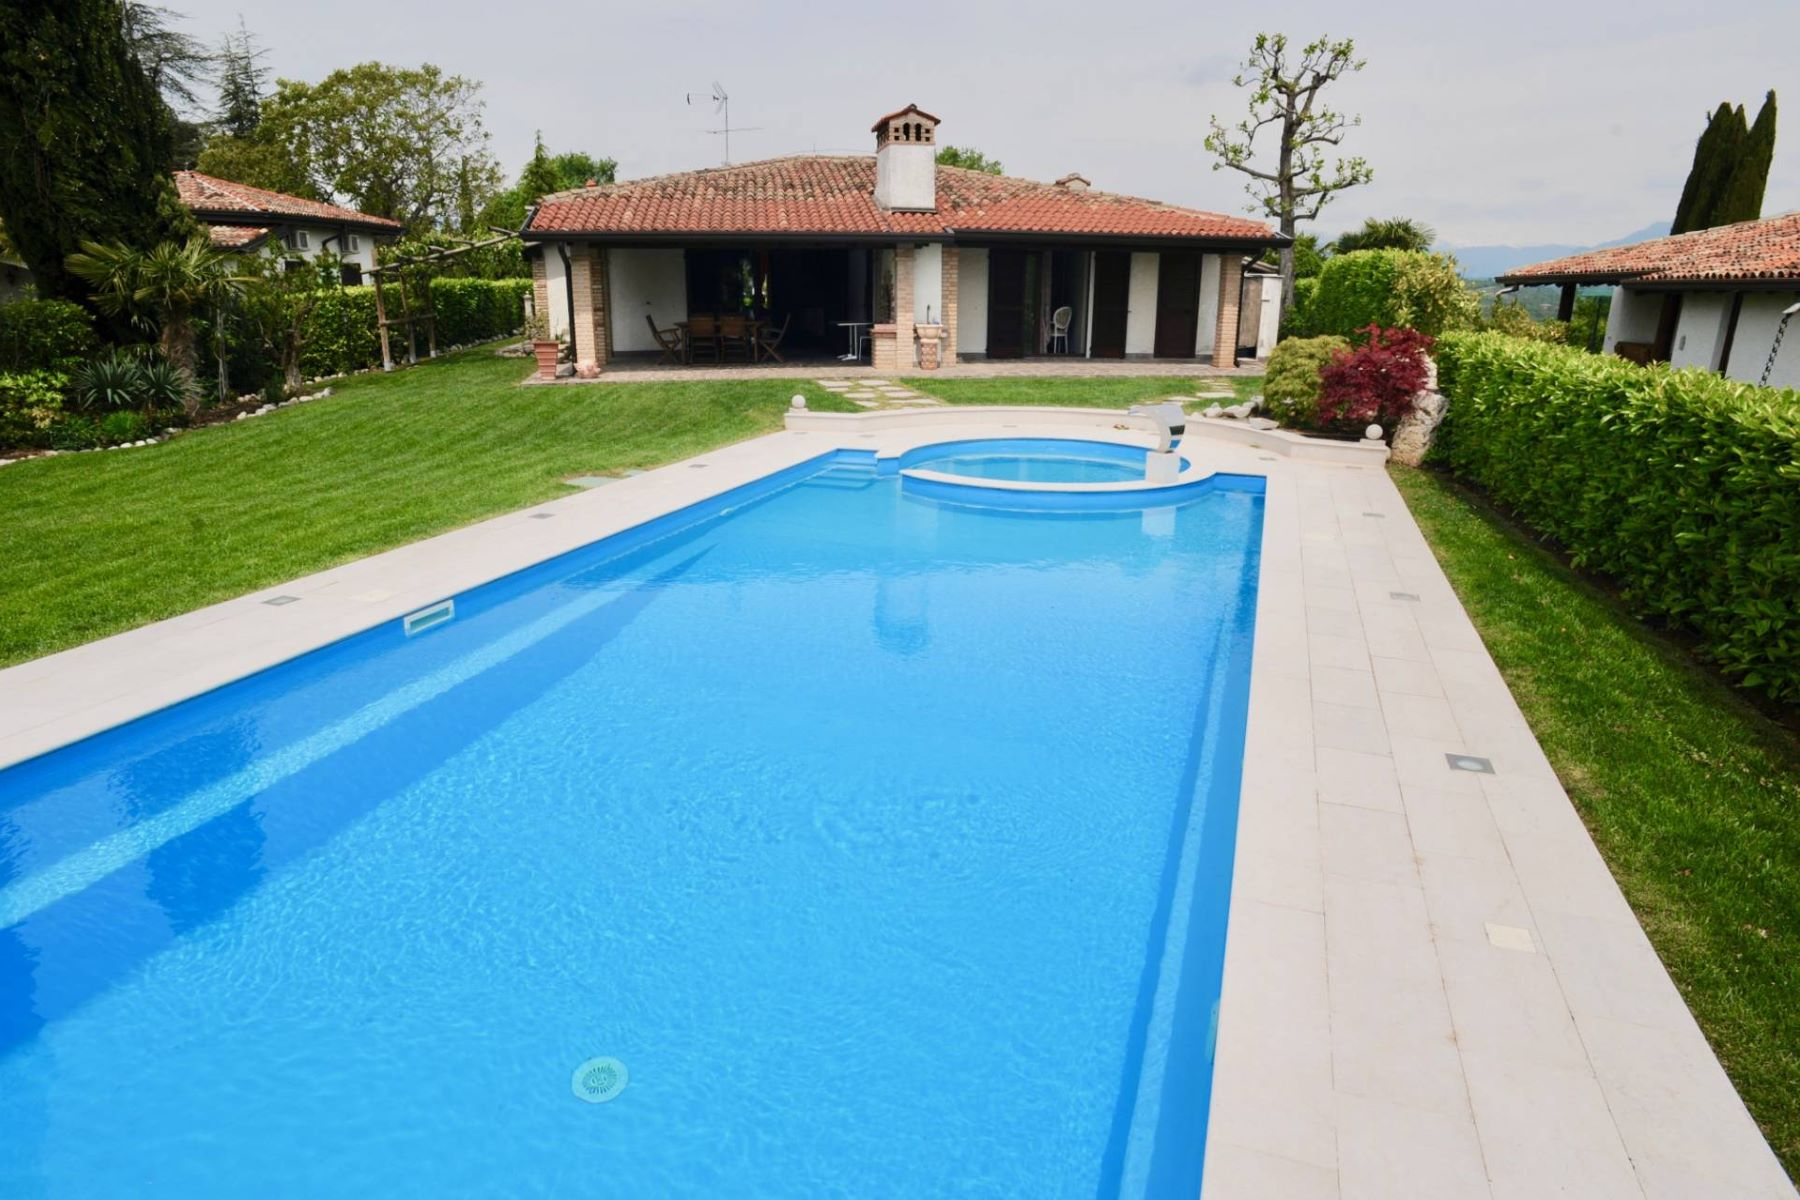 Other Residential Homes for Sale at Beautiful detached house with swimming pool in Padenghe sul Garda Padenghe sul Garda, Brescia Italy